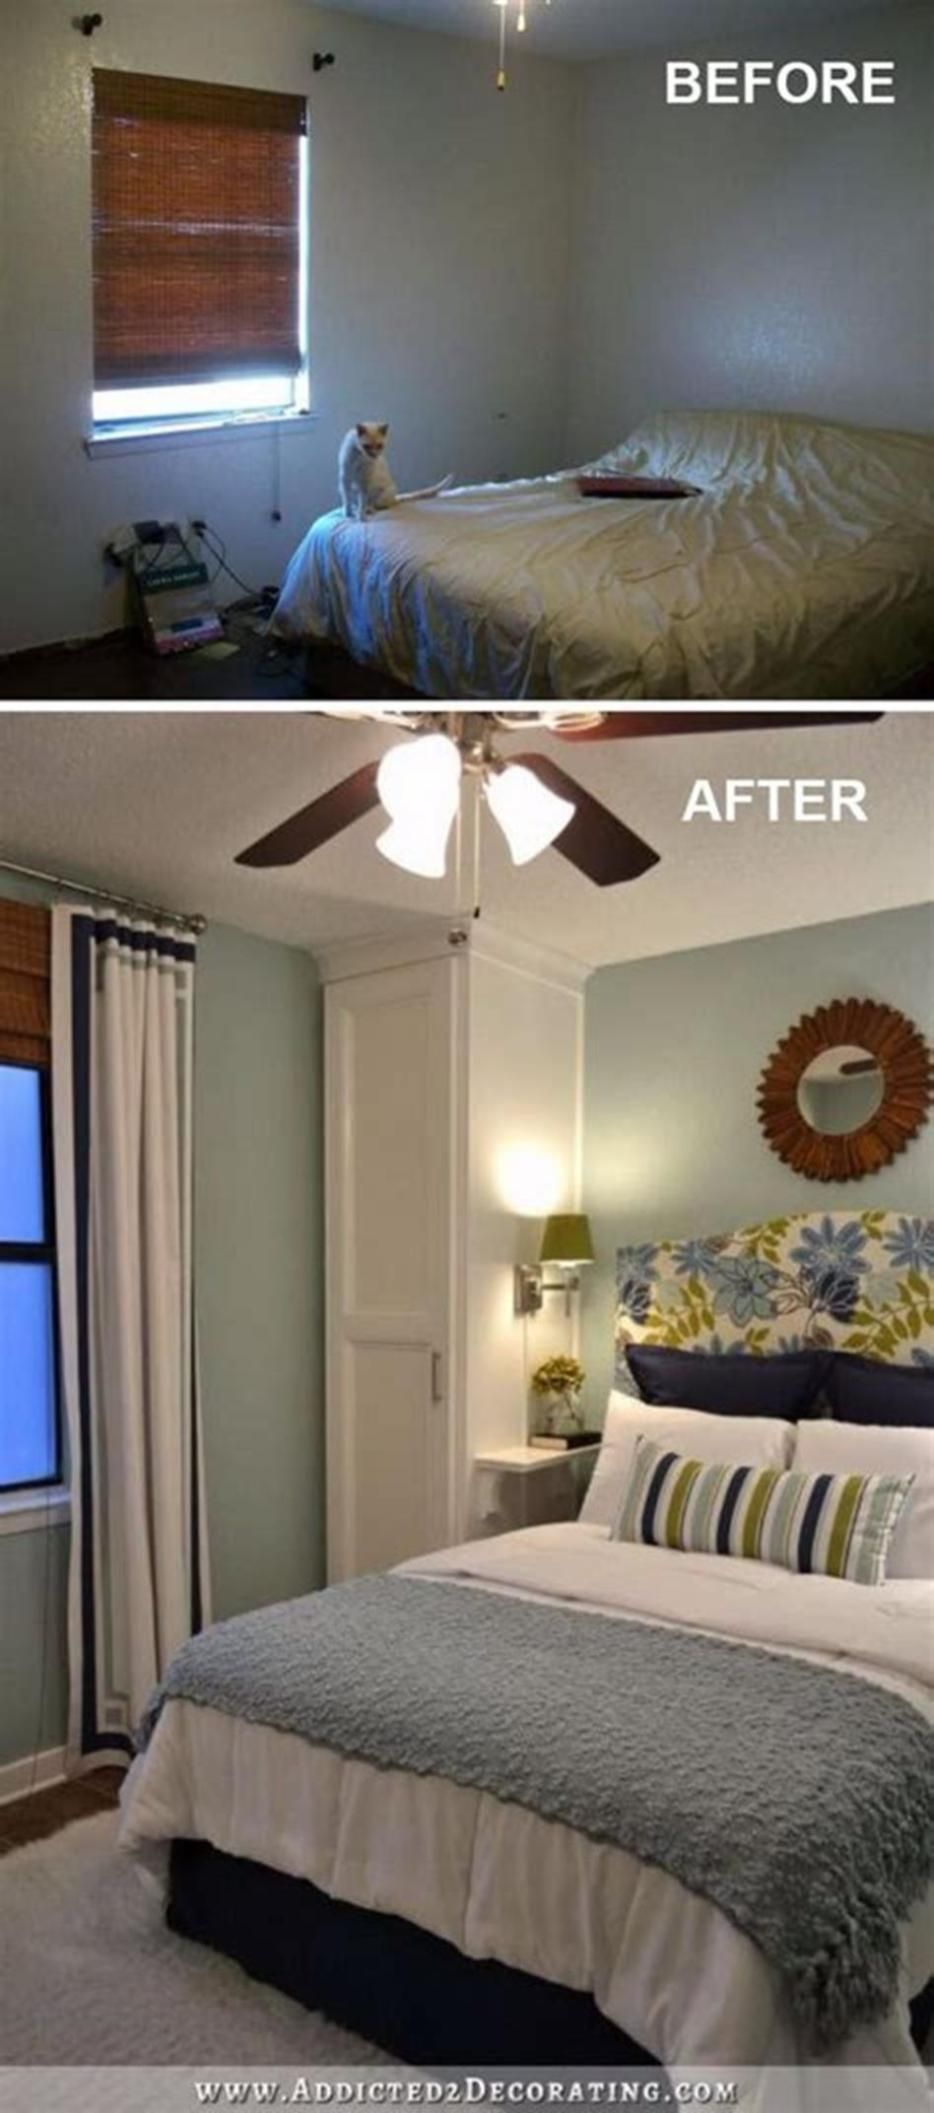 55 Amazing Small Master Bedroom Decorating Design Ideas On A Budget With Images Small Master Bedroom Remodel Bedroom